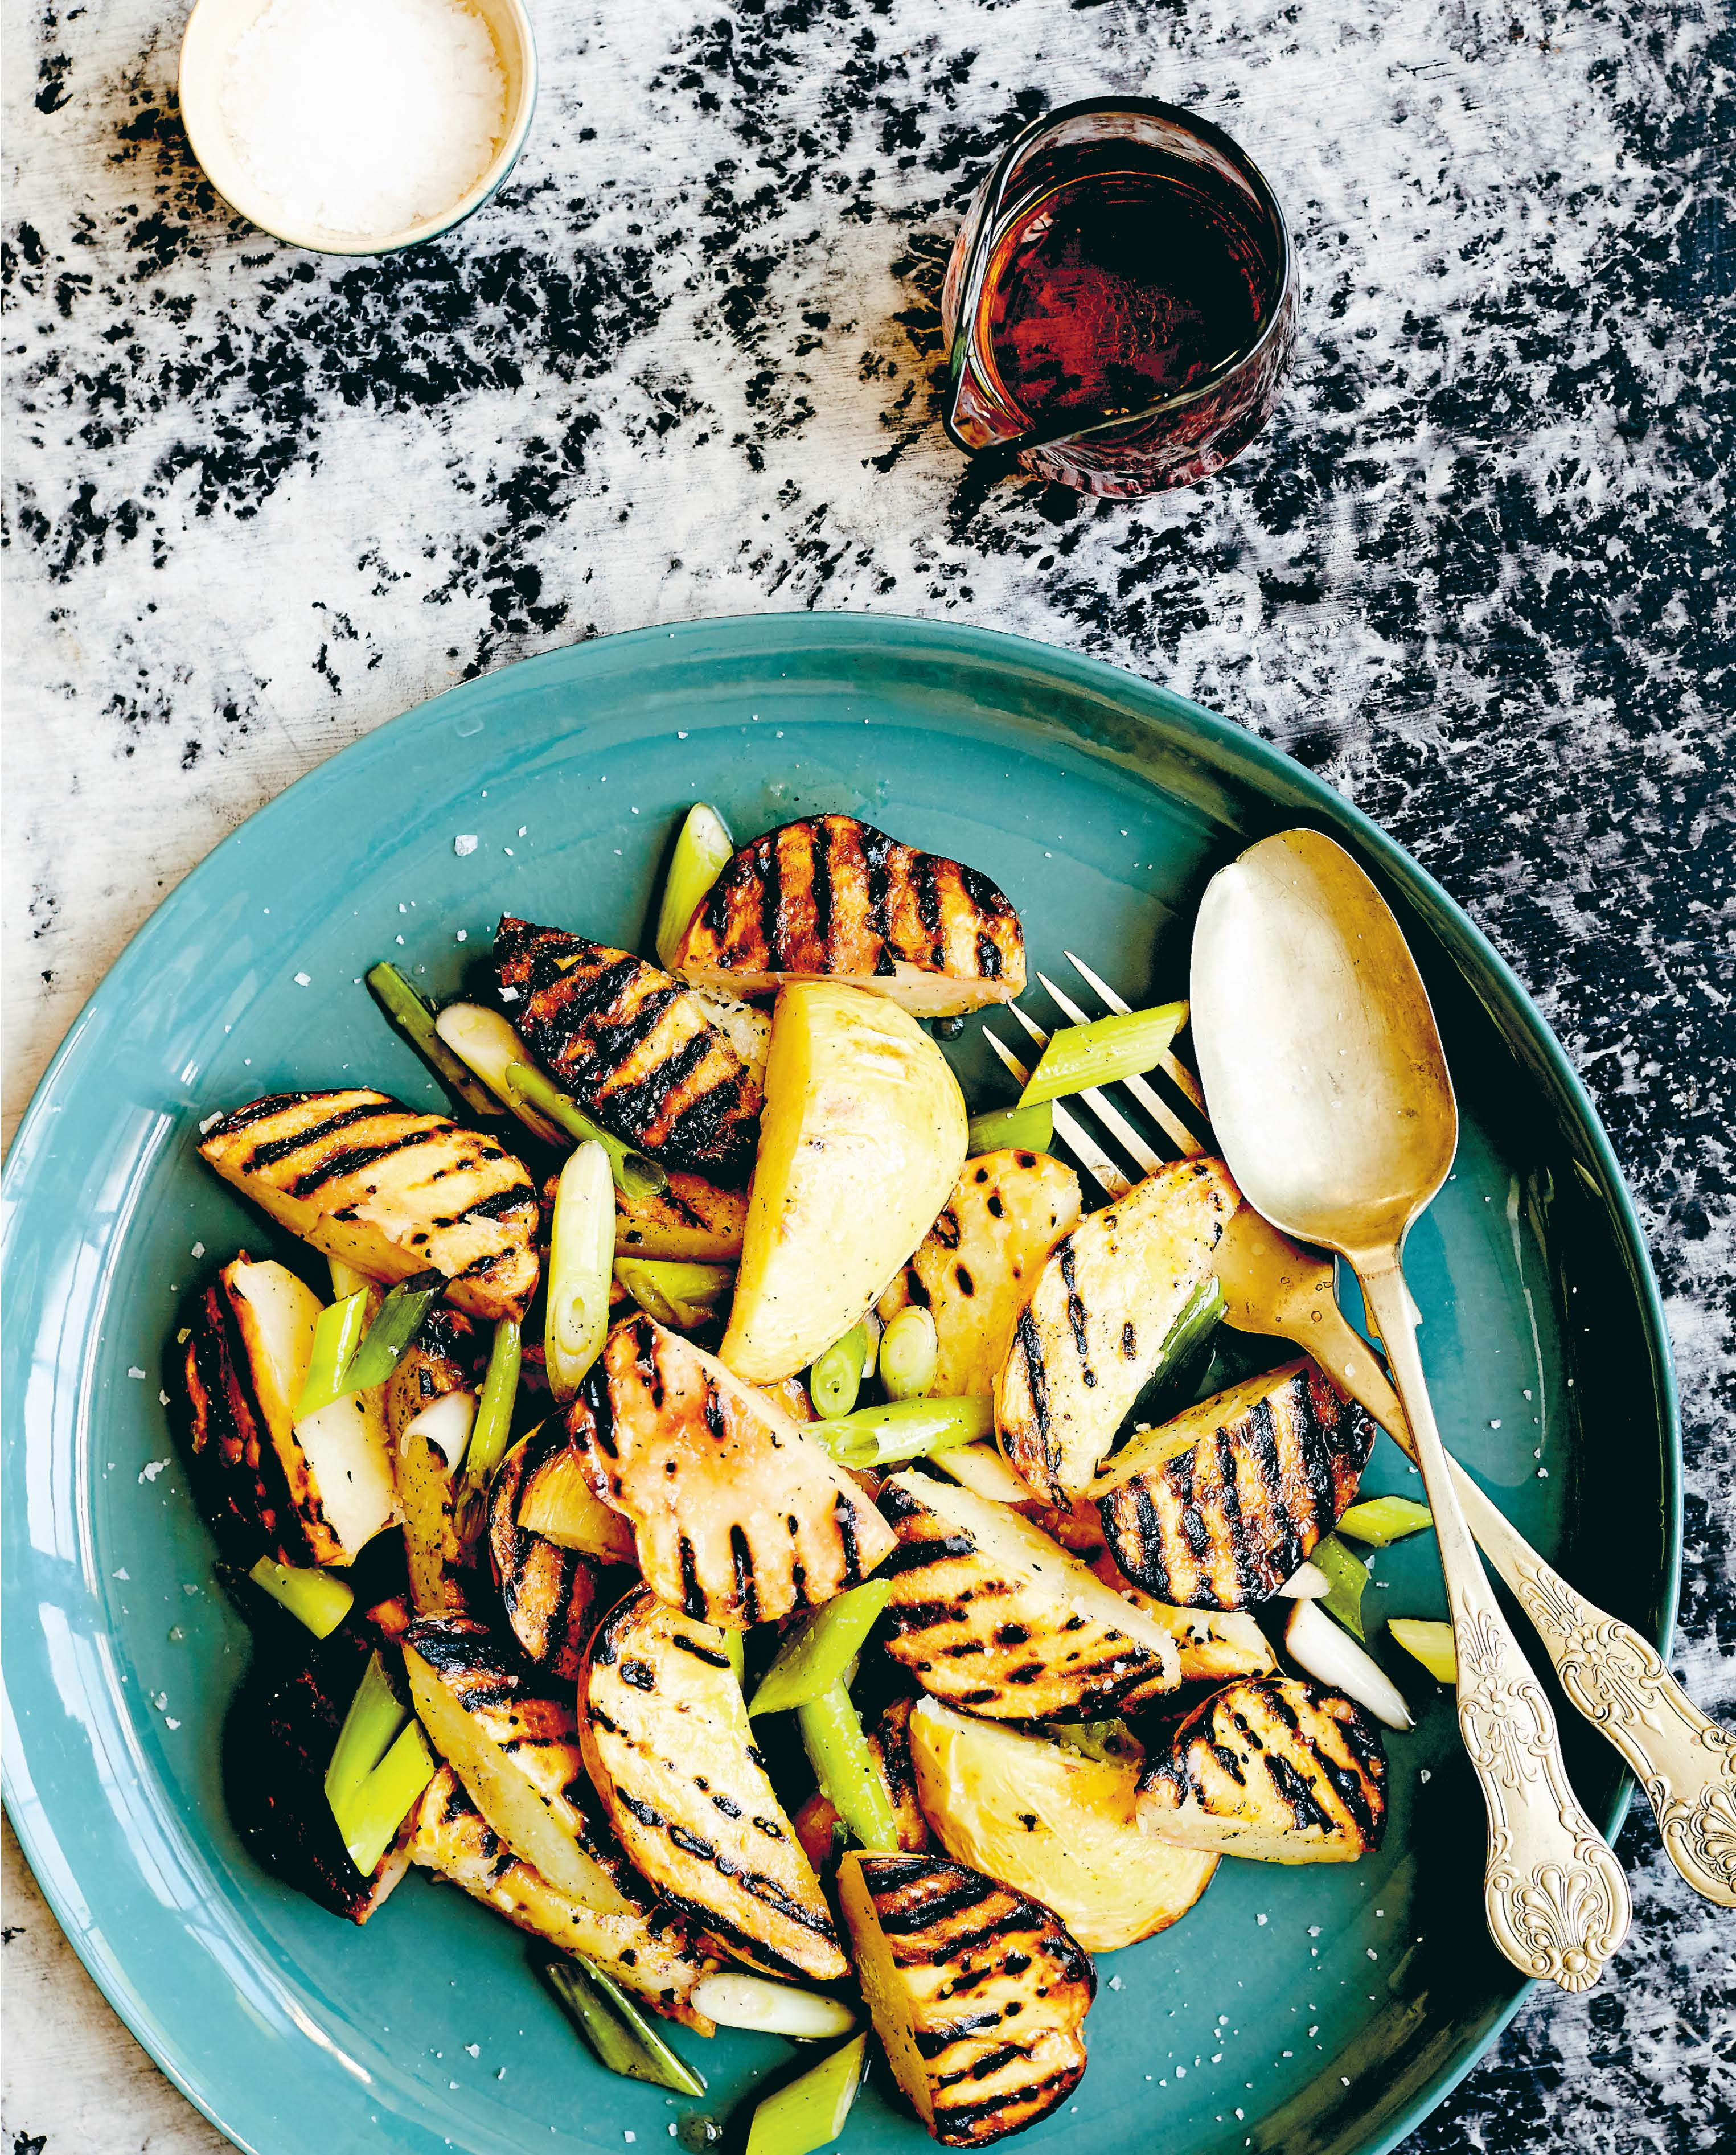 Grilled potato and spring onion salad